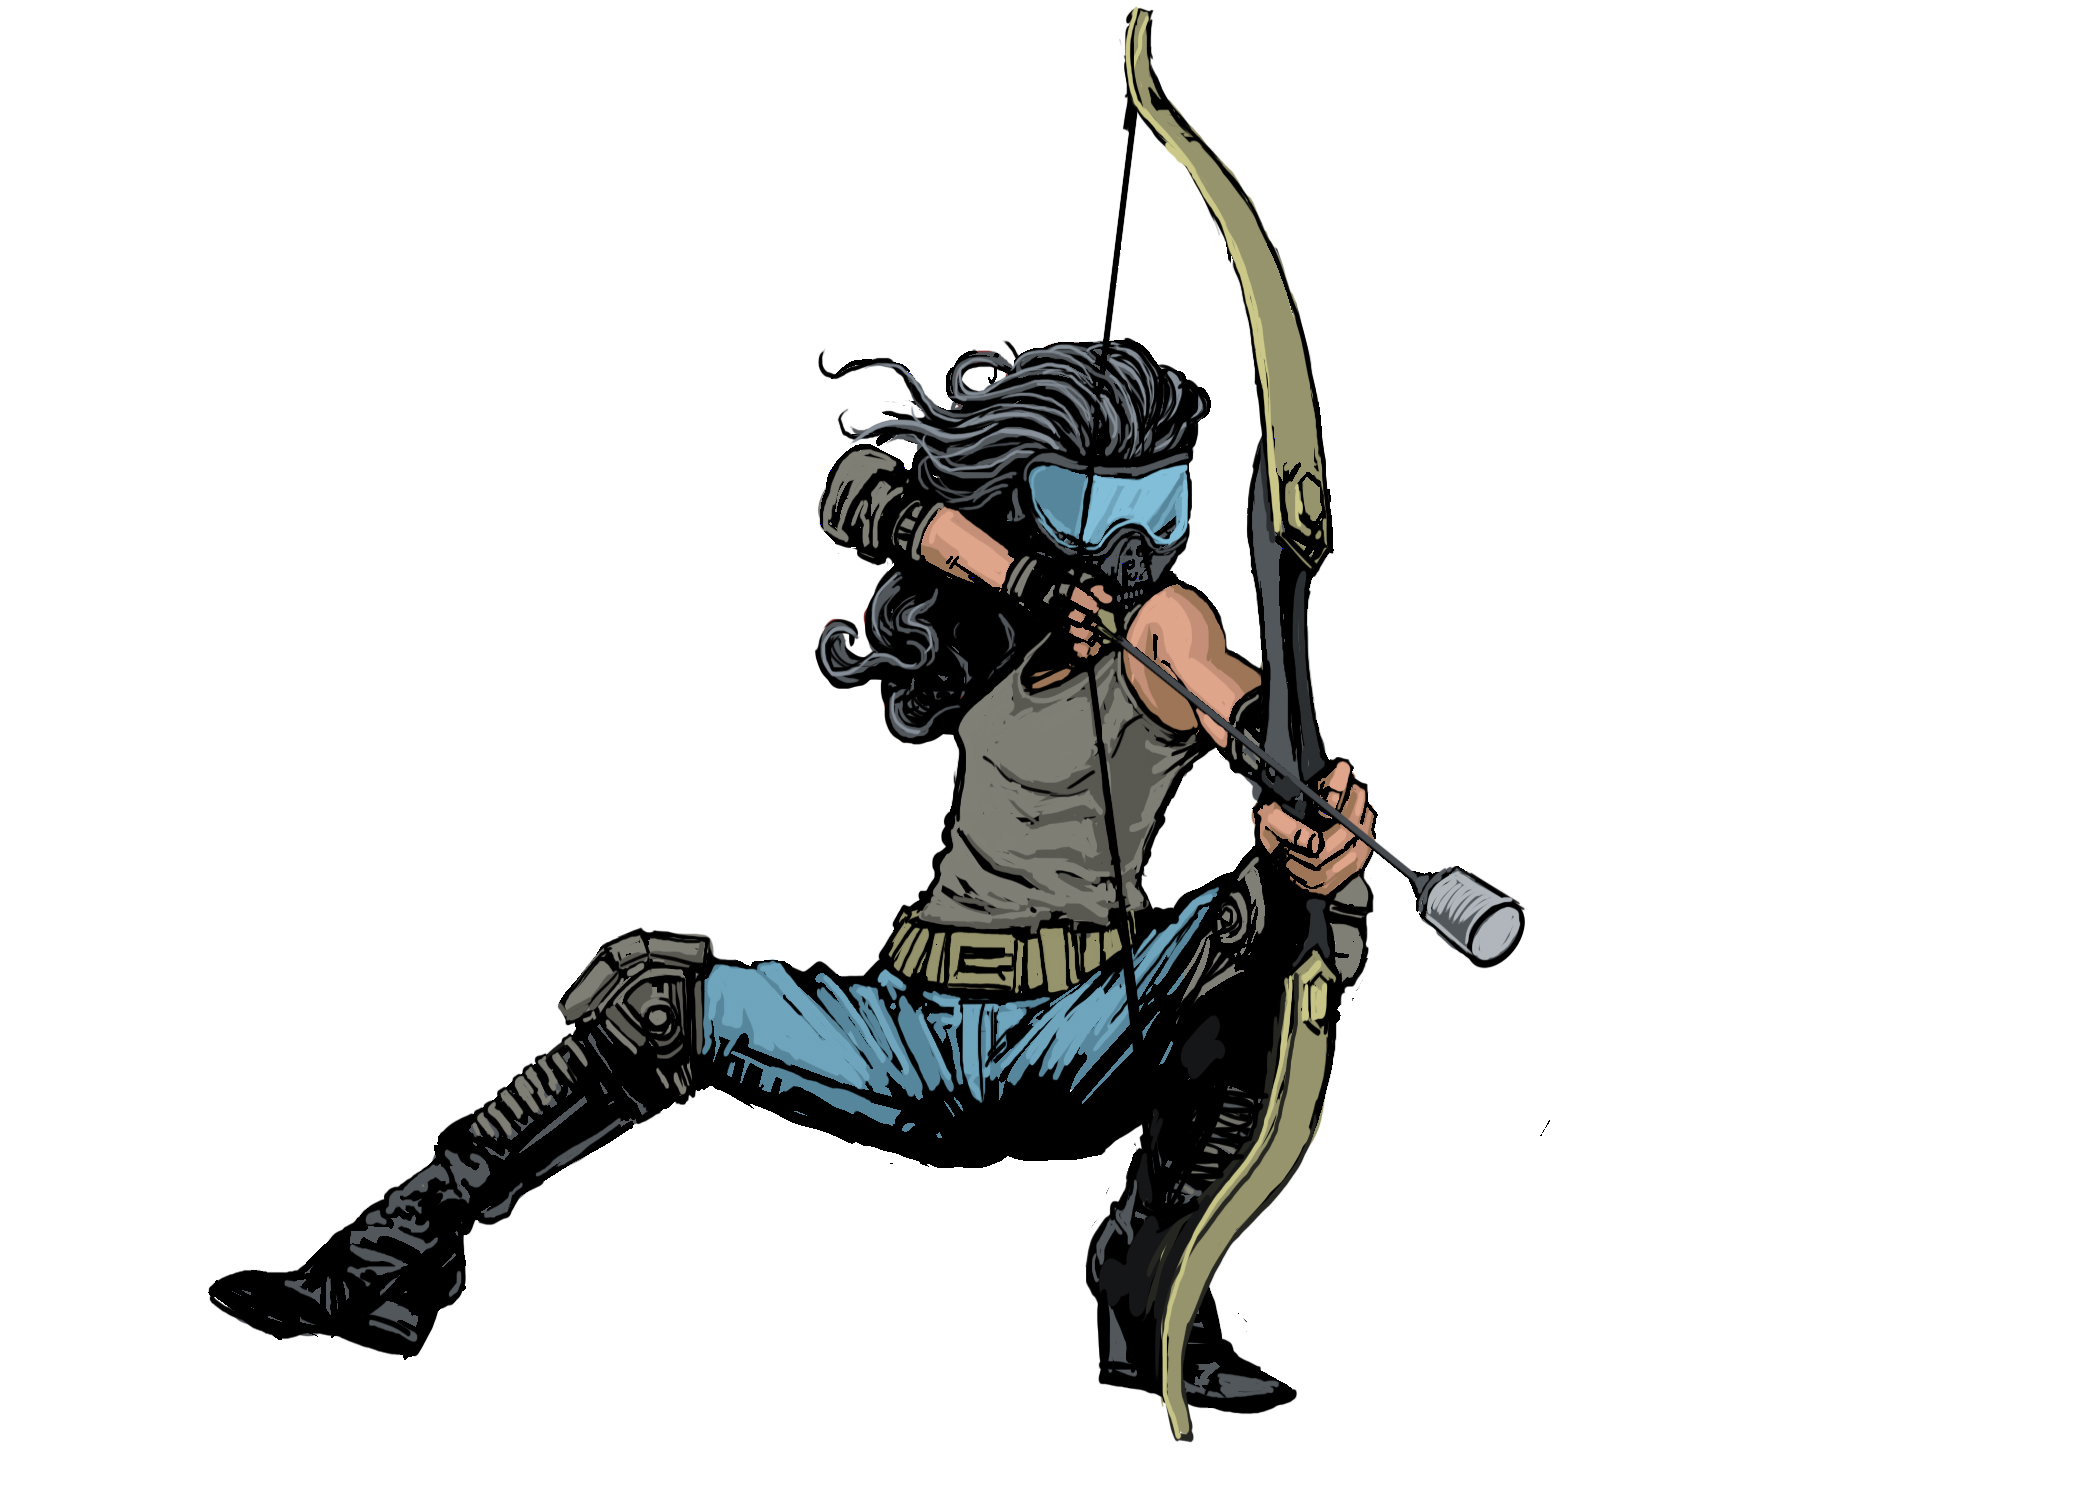 Archery clipart archery tag. How to play warrior